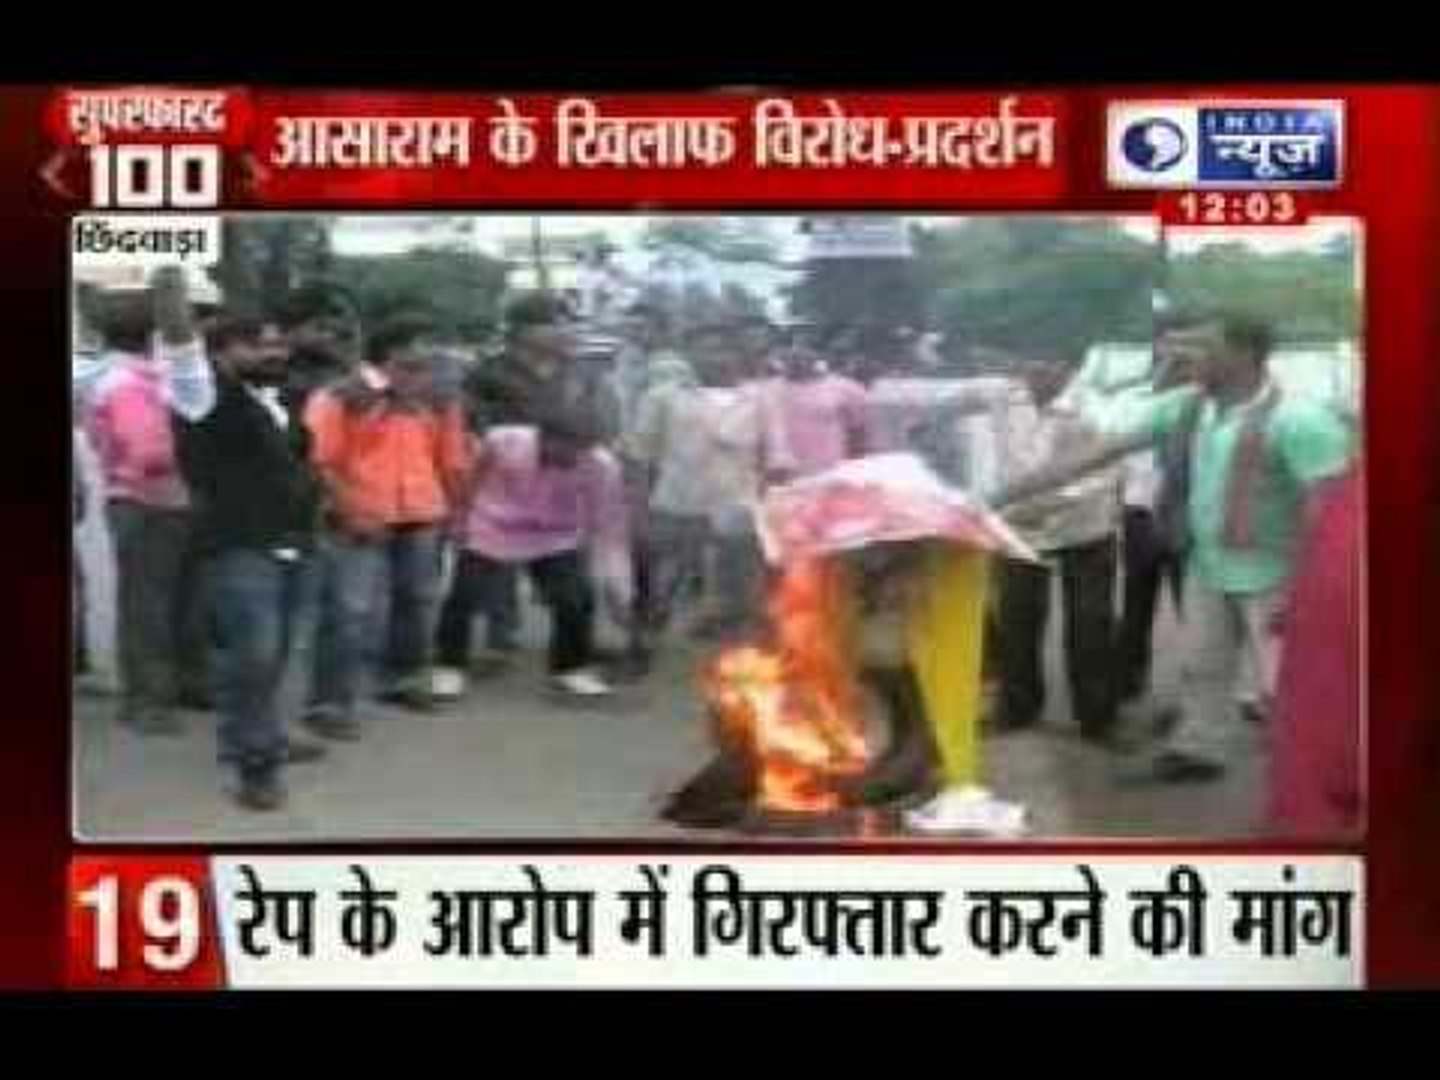 India News : Super Fast 100 News on 26th August